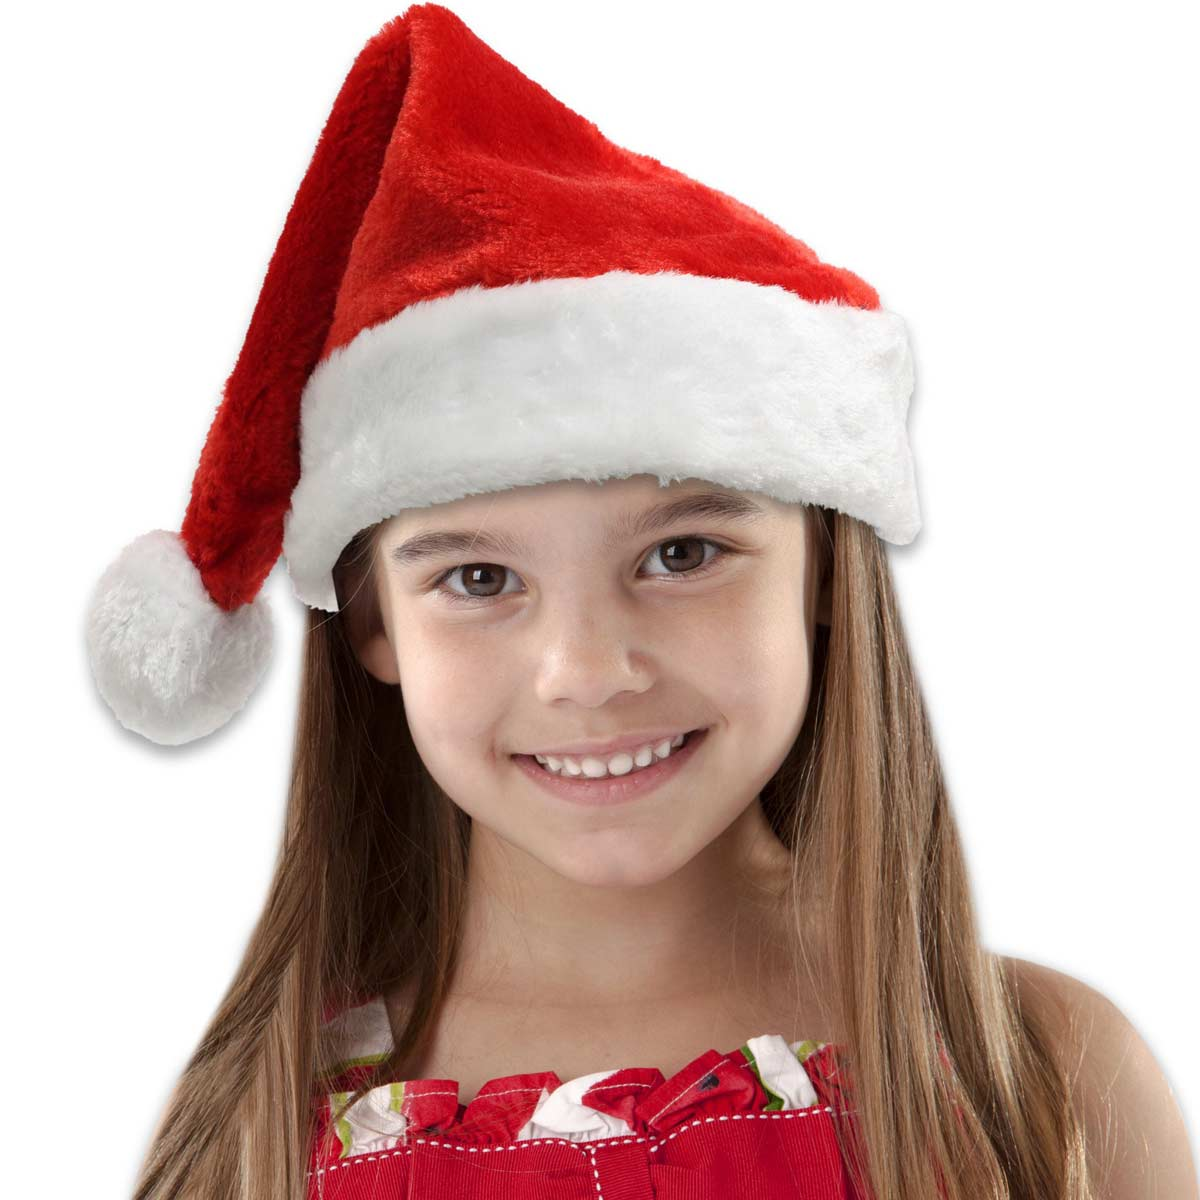 Embroidered Red Plush Children's Santa Hats